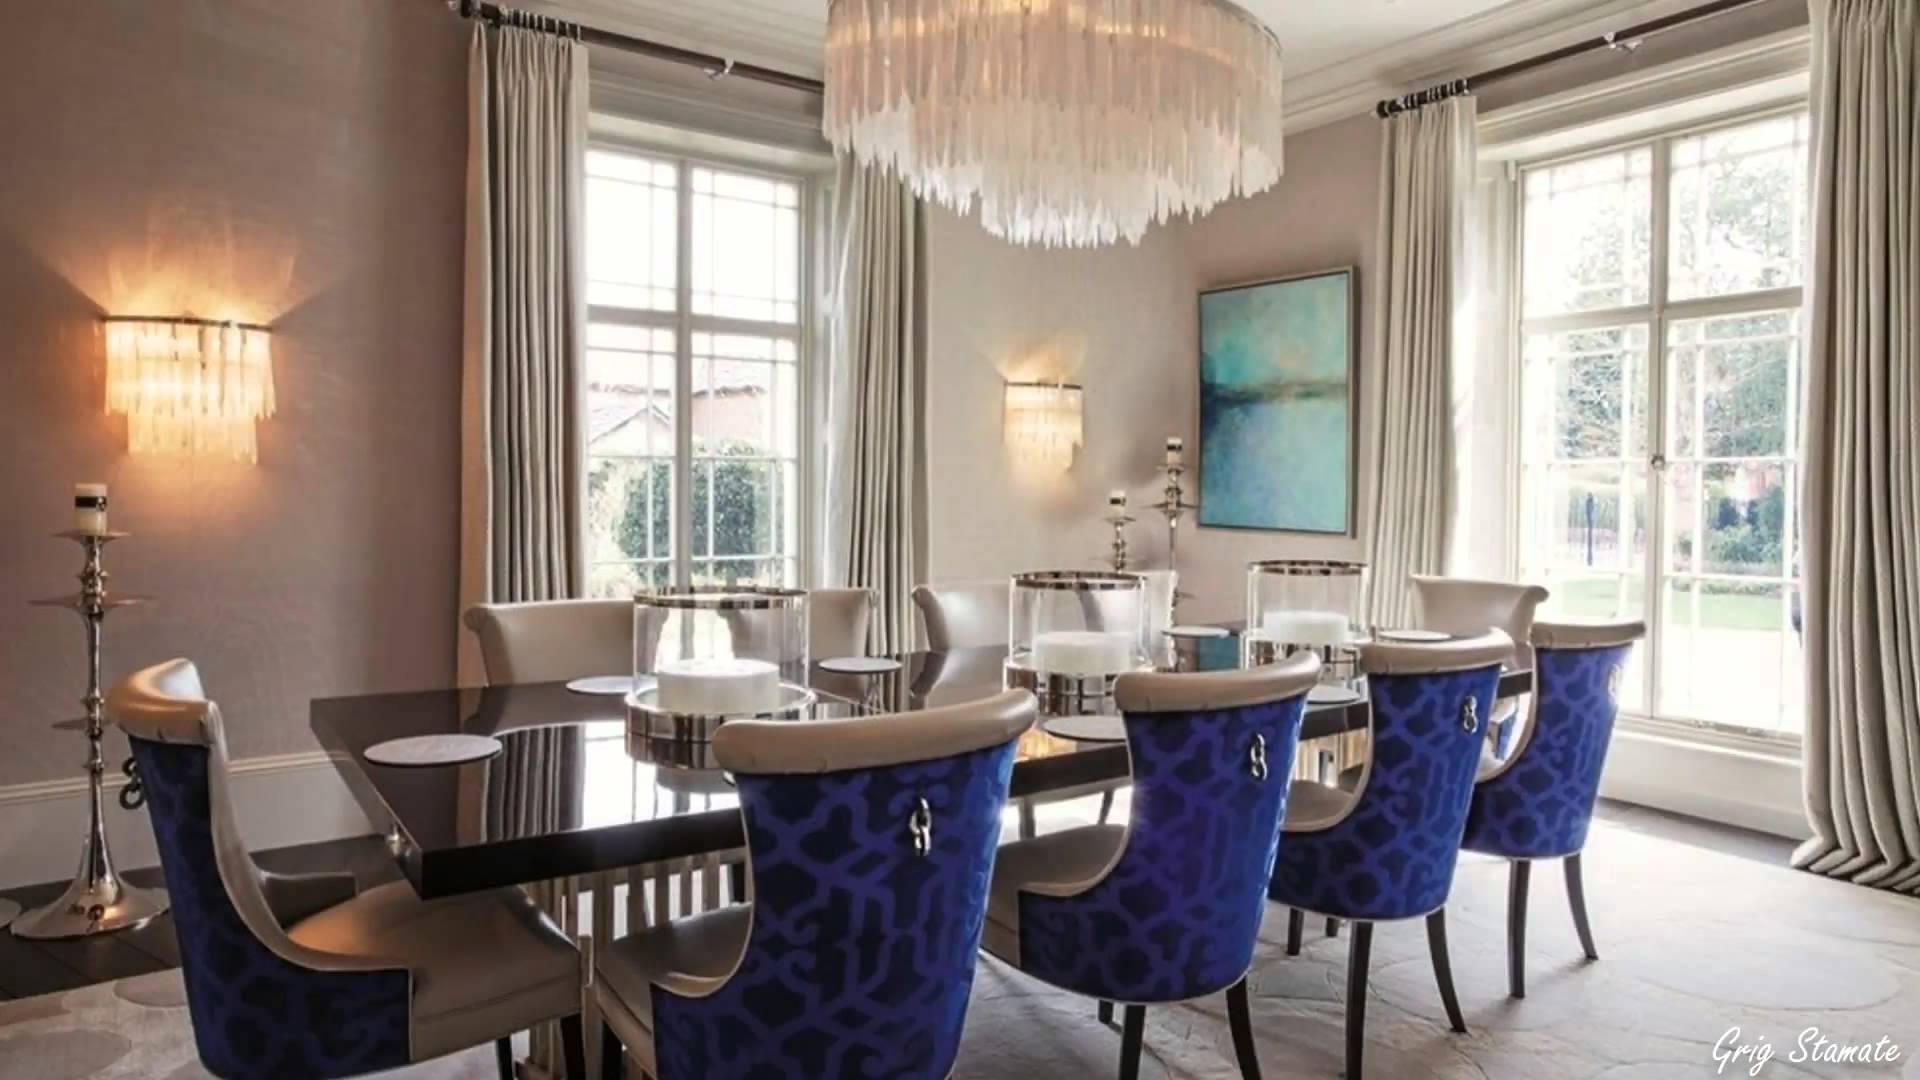 Luxury dining room with tasselled chandelier and blue geometric chairs